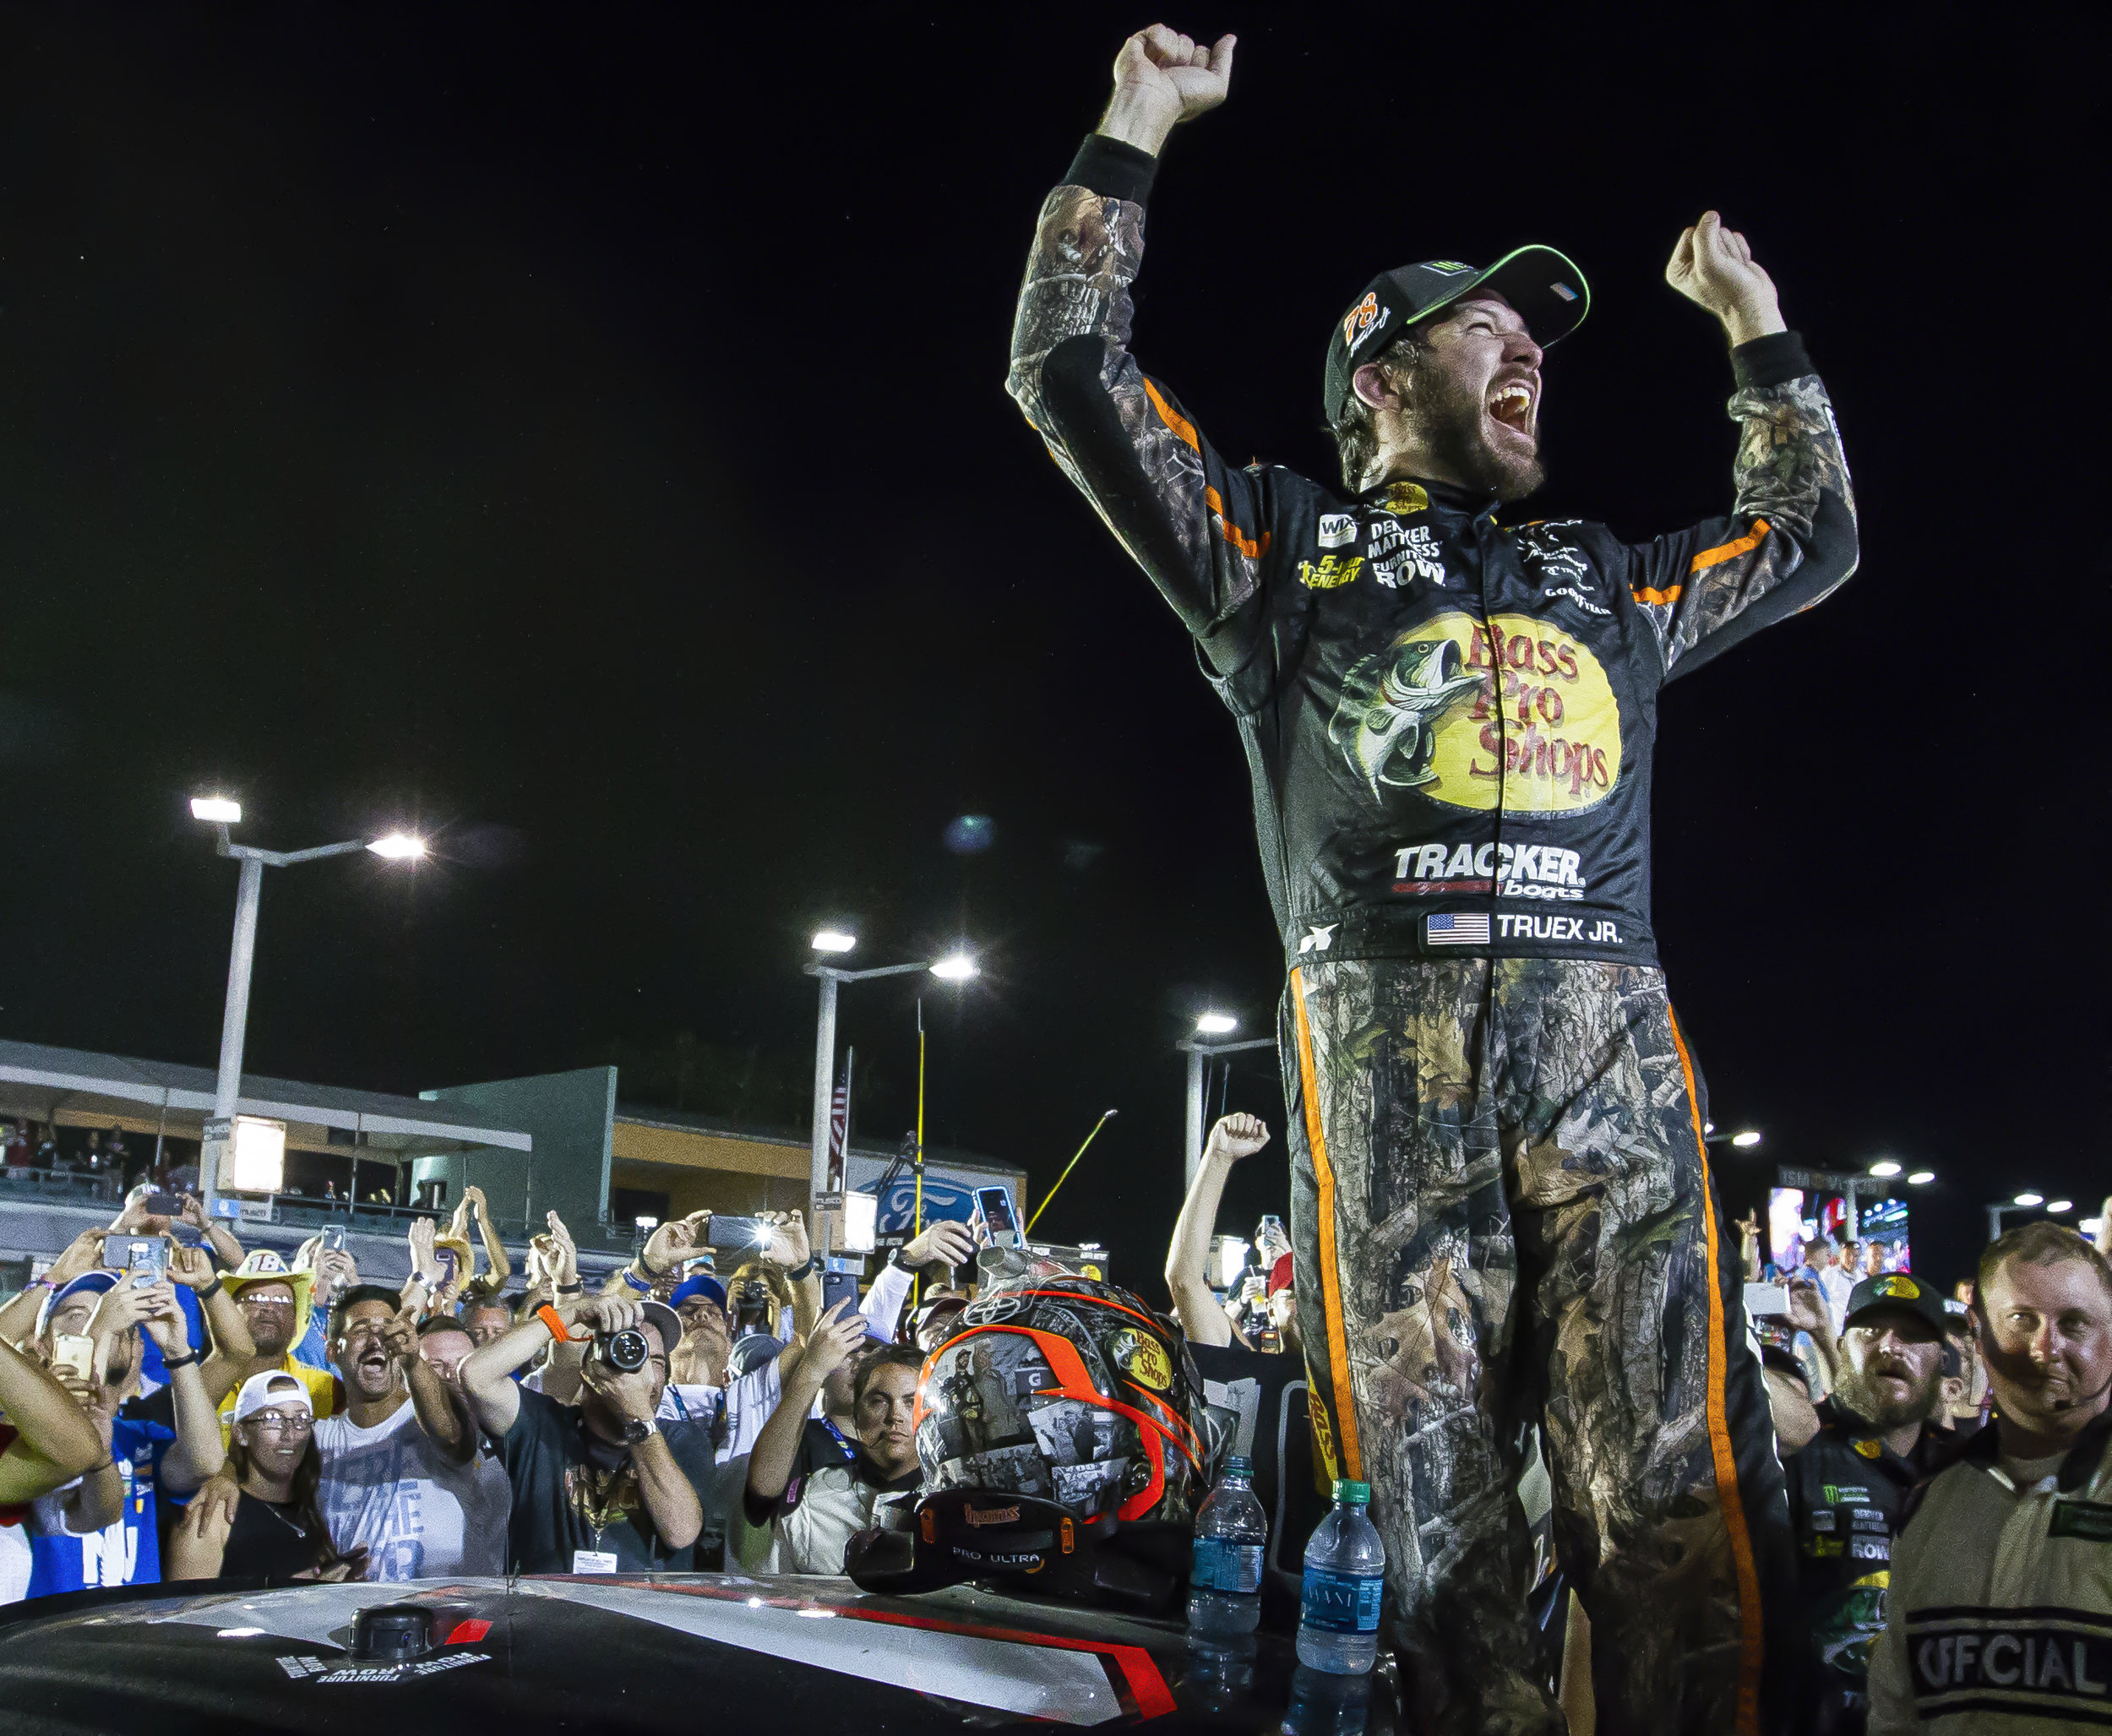 Martin Truex Jr. #78 reacts after winning the Monster Energy NASCAR Cup Series and the Ford EcoBoost 400 Championships at the Homestead-Miami Speedway on Sunday, Nov. 19, 2017.